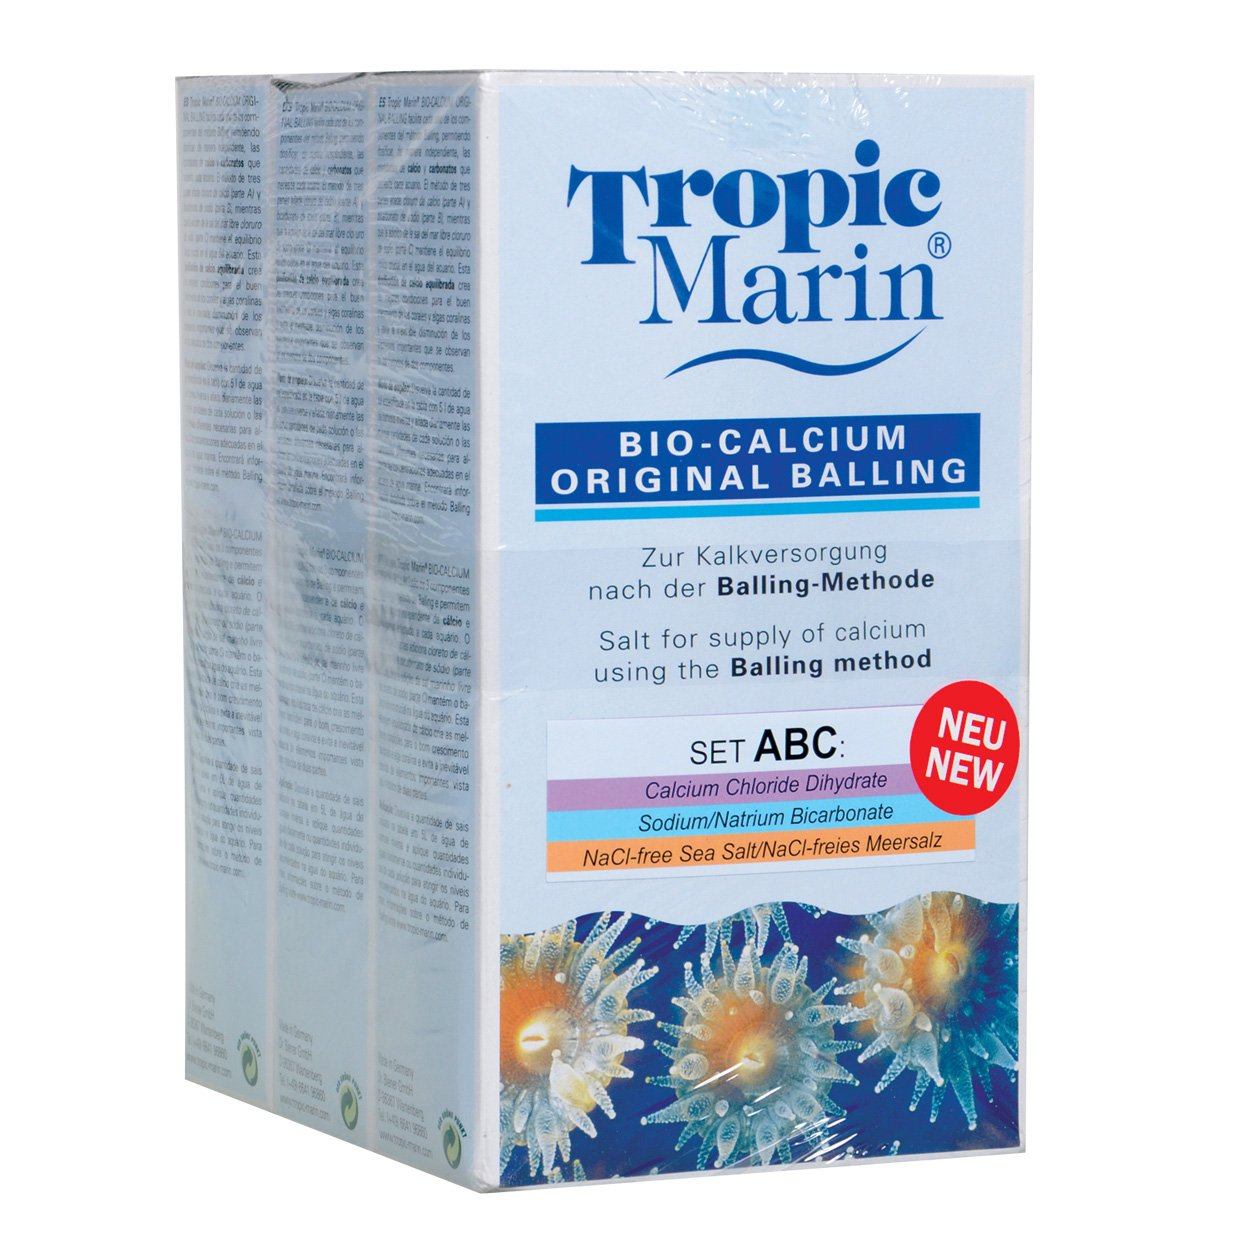 Tropic Marin Bio Calcium original Balling Lot de 3 x 1 kg 73206